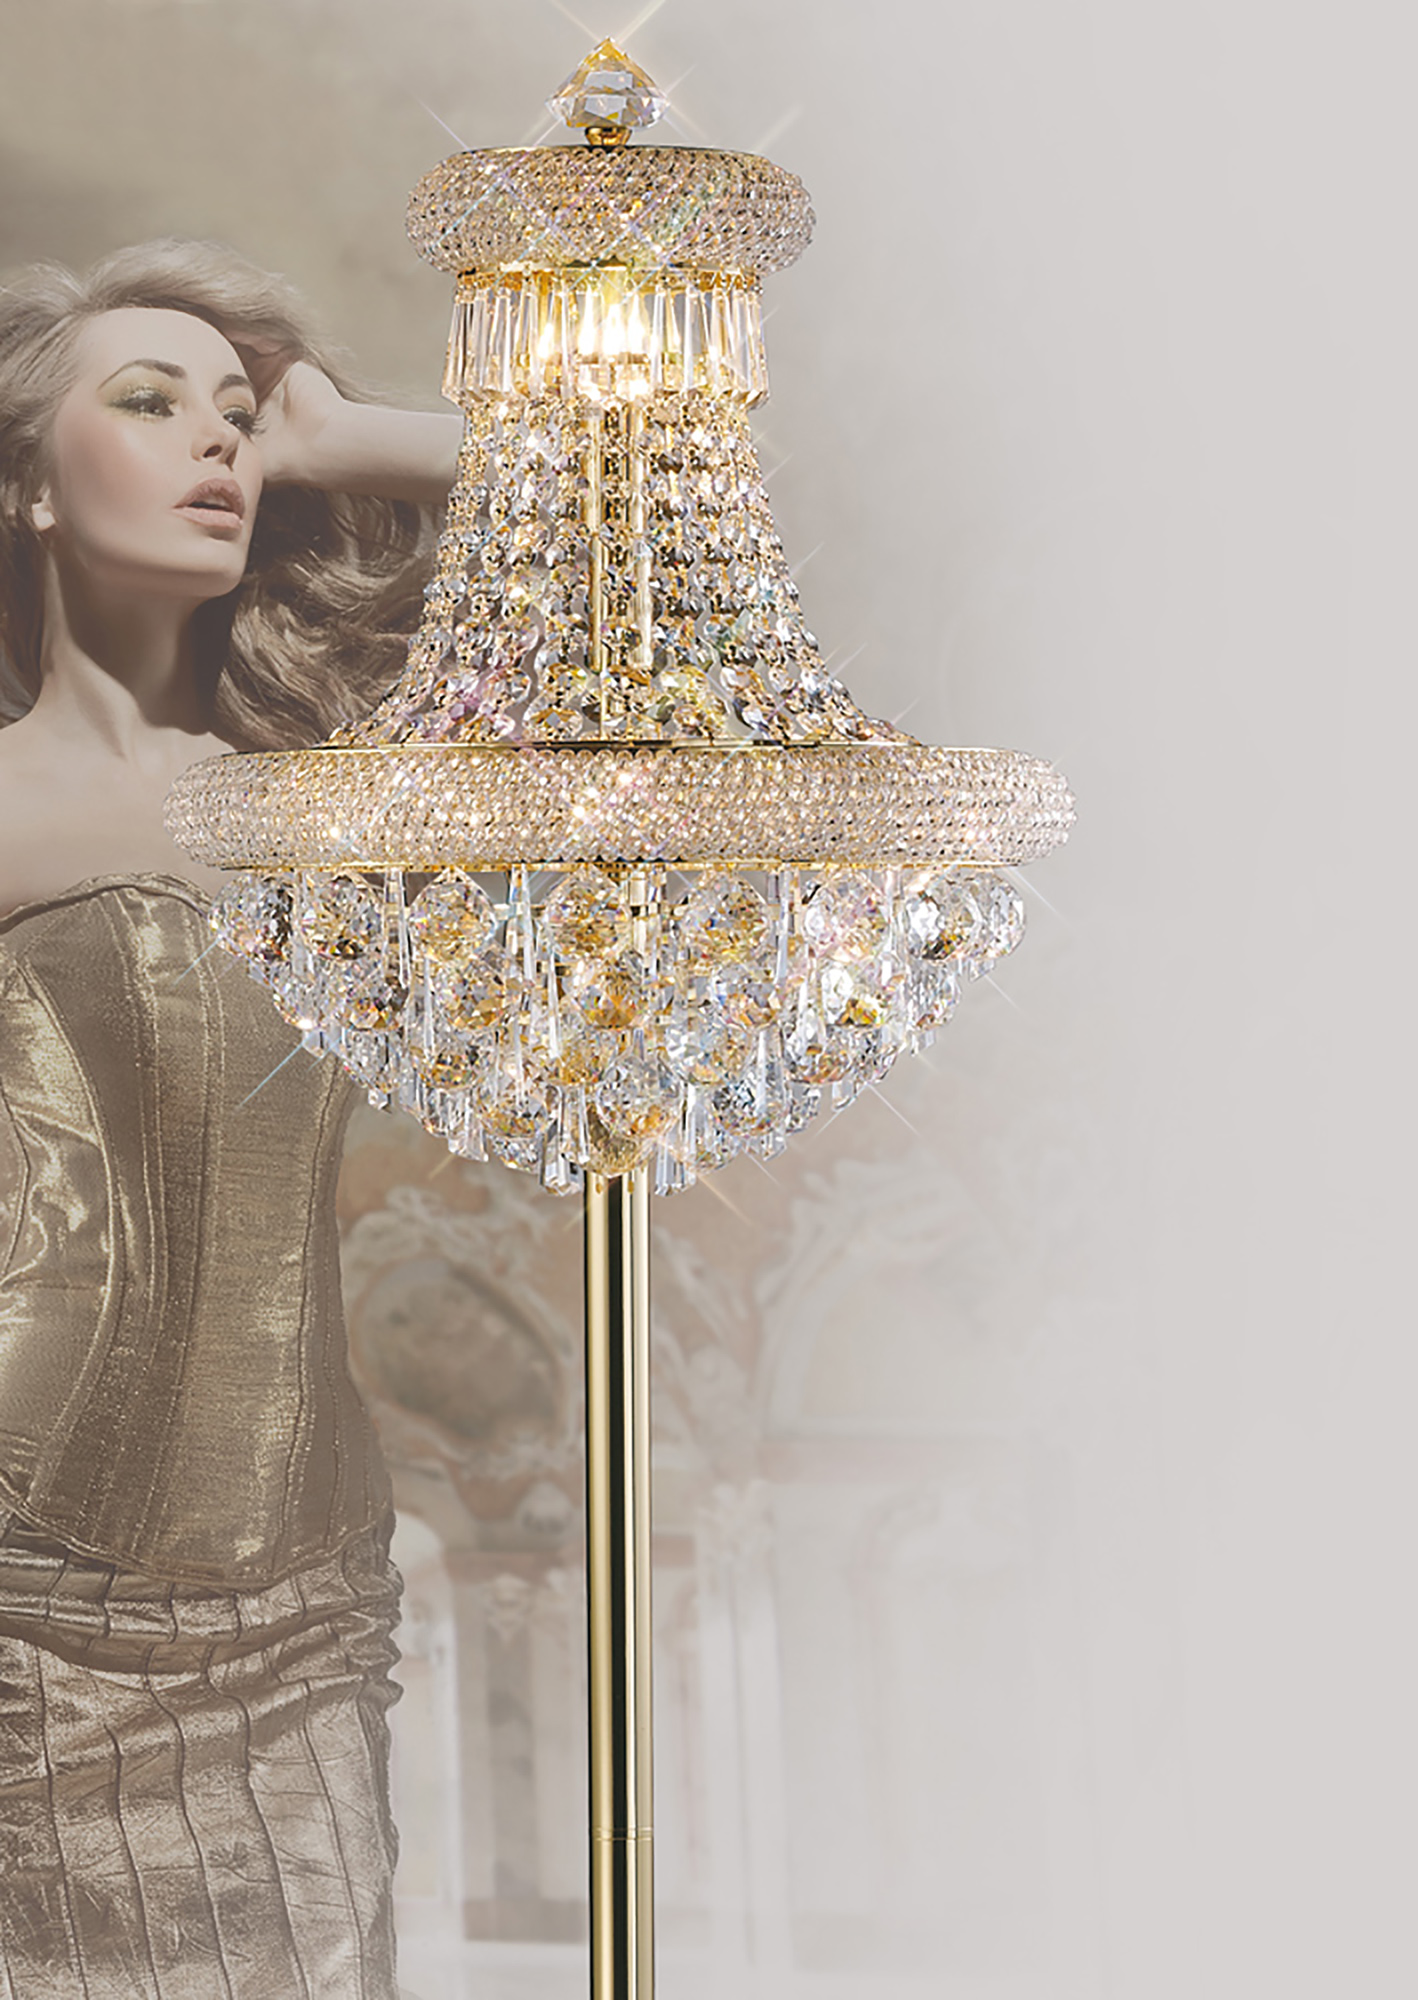 Alexandra Crystal Floor Lamps Diyas Traditional Crystal Floor Lamps